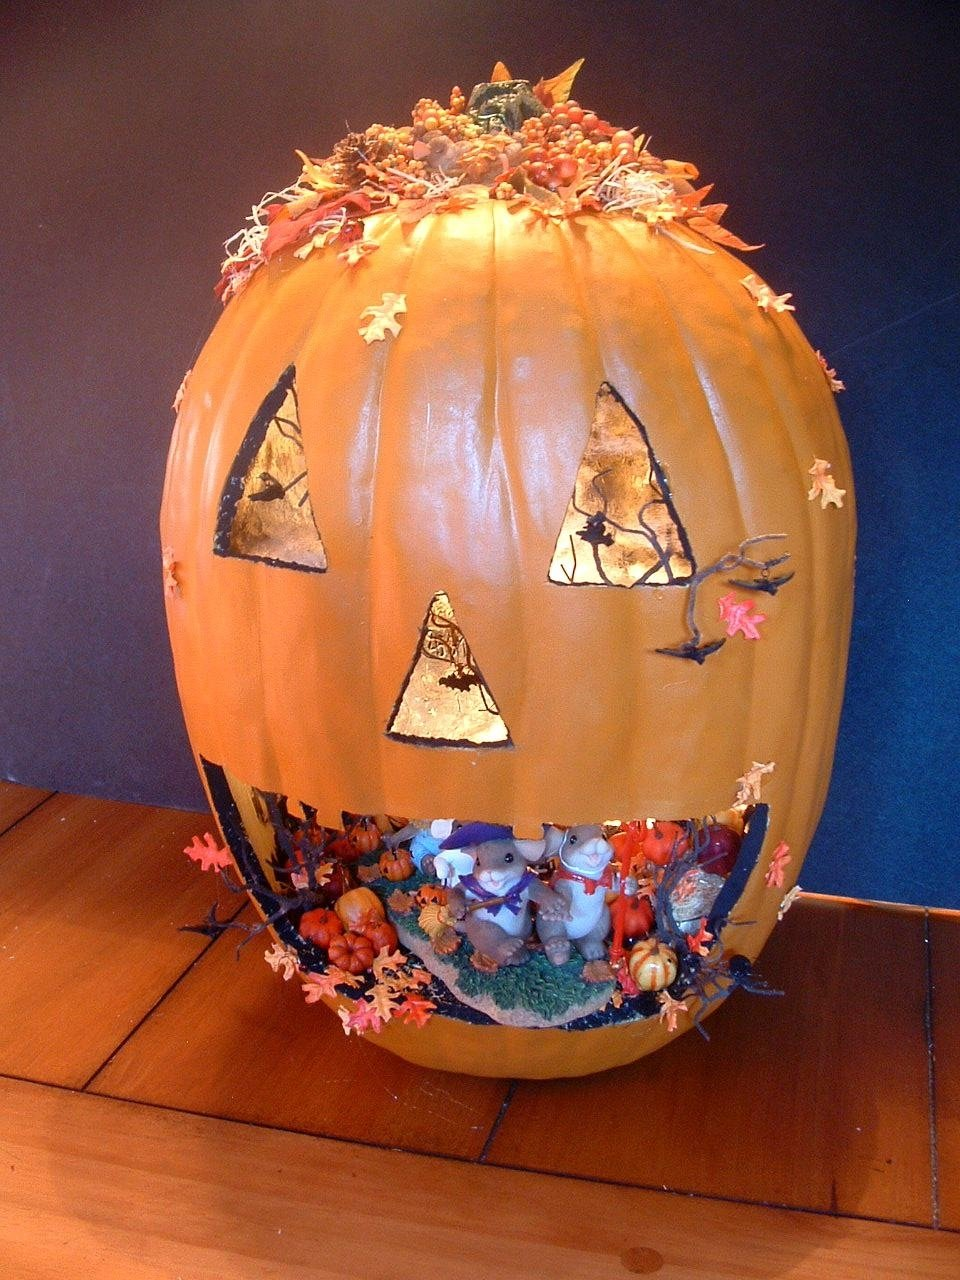 10 Beautiful Pumpkin Decorating Ideas Without Carving For Kids decorating ideas heavenly image of kid accessories for halloween 2020